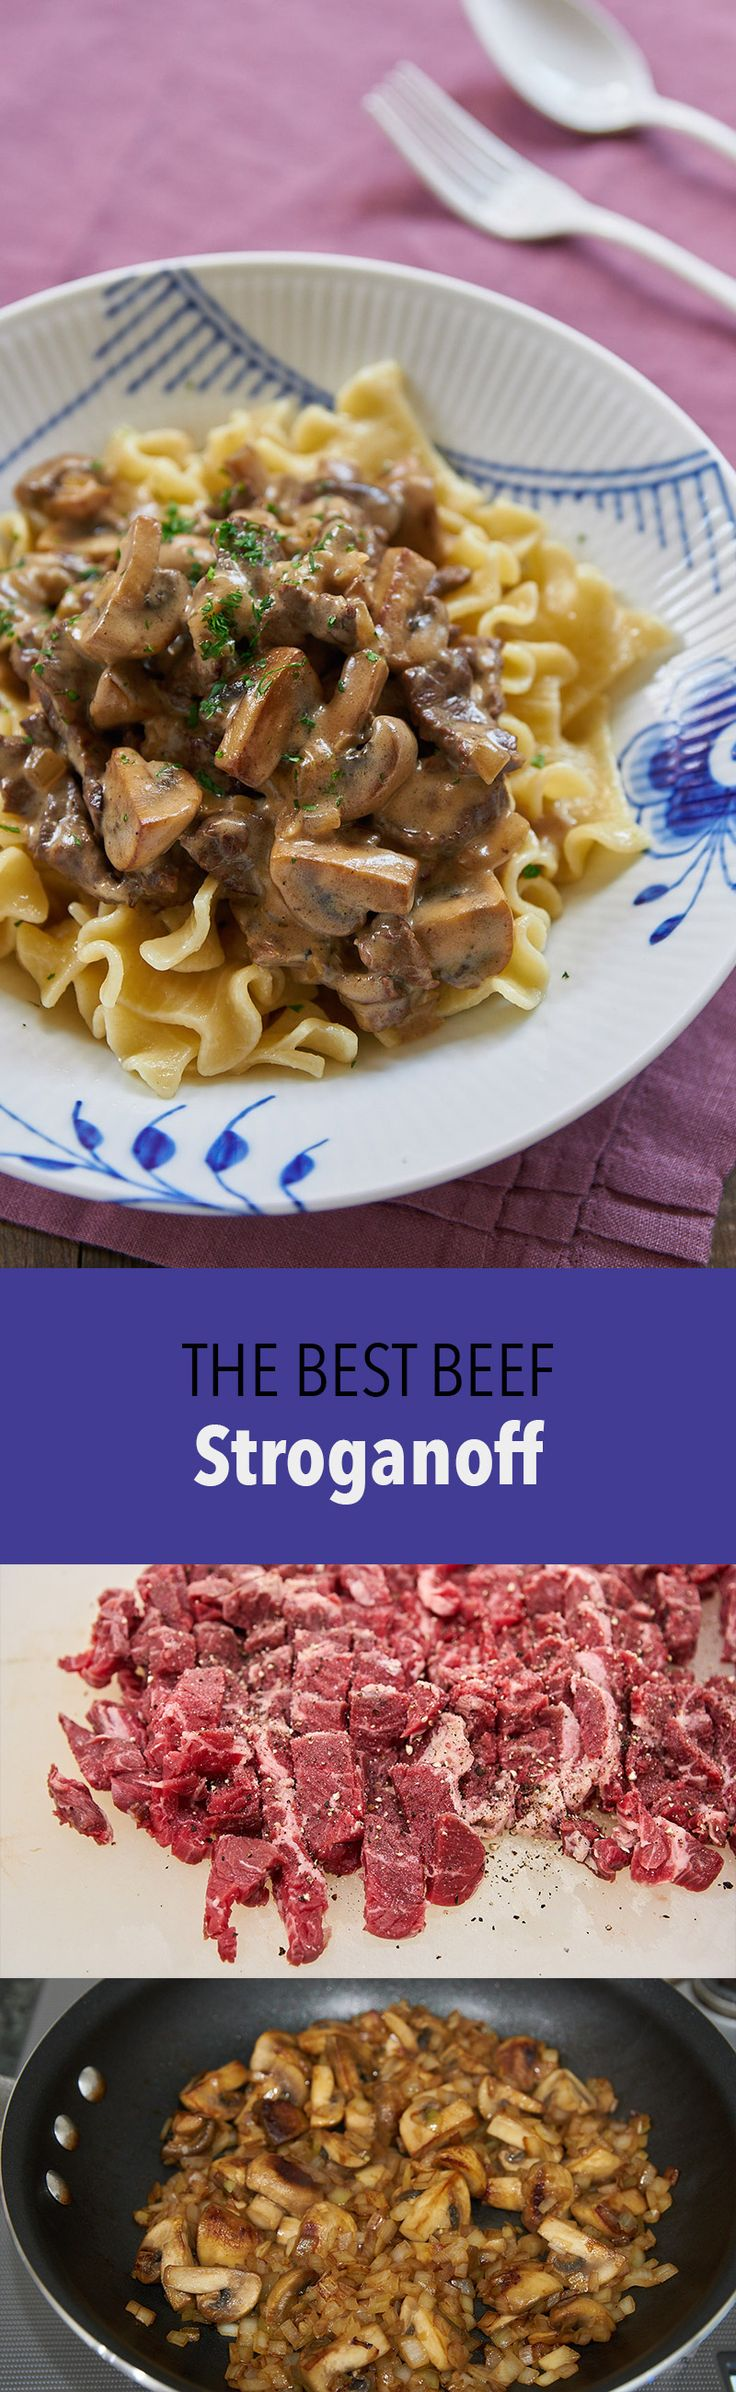 Beef Stroganoff is such an easy meal and yet it's flavorful and comforting. My secrets for making the best Beef Stroganoff.